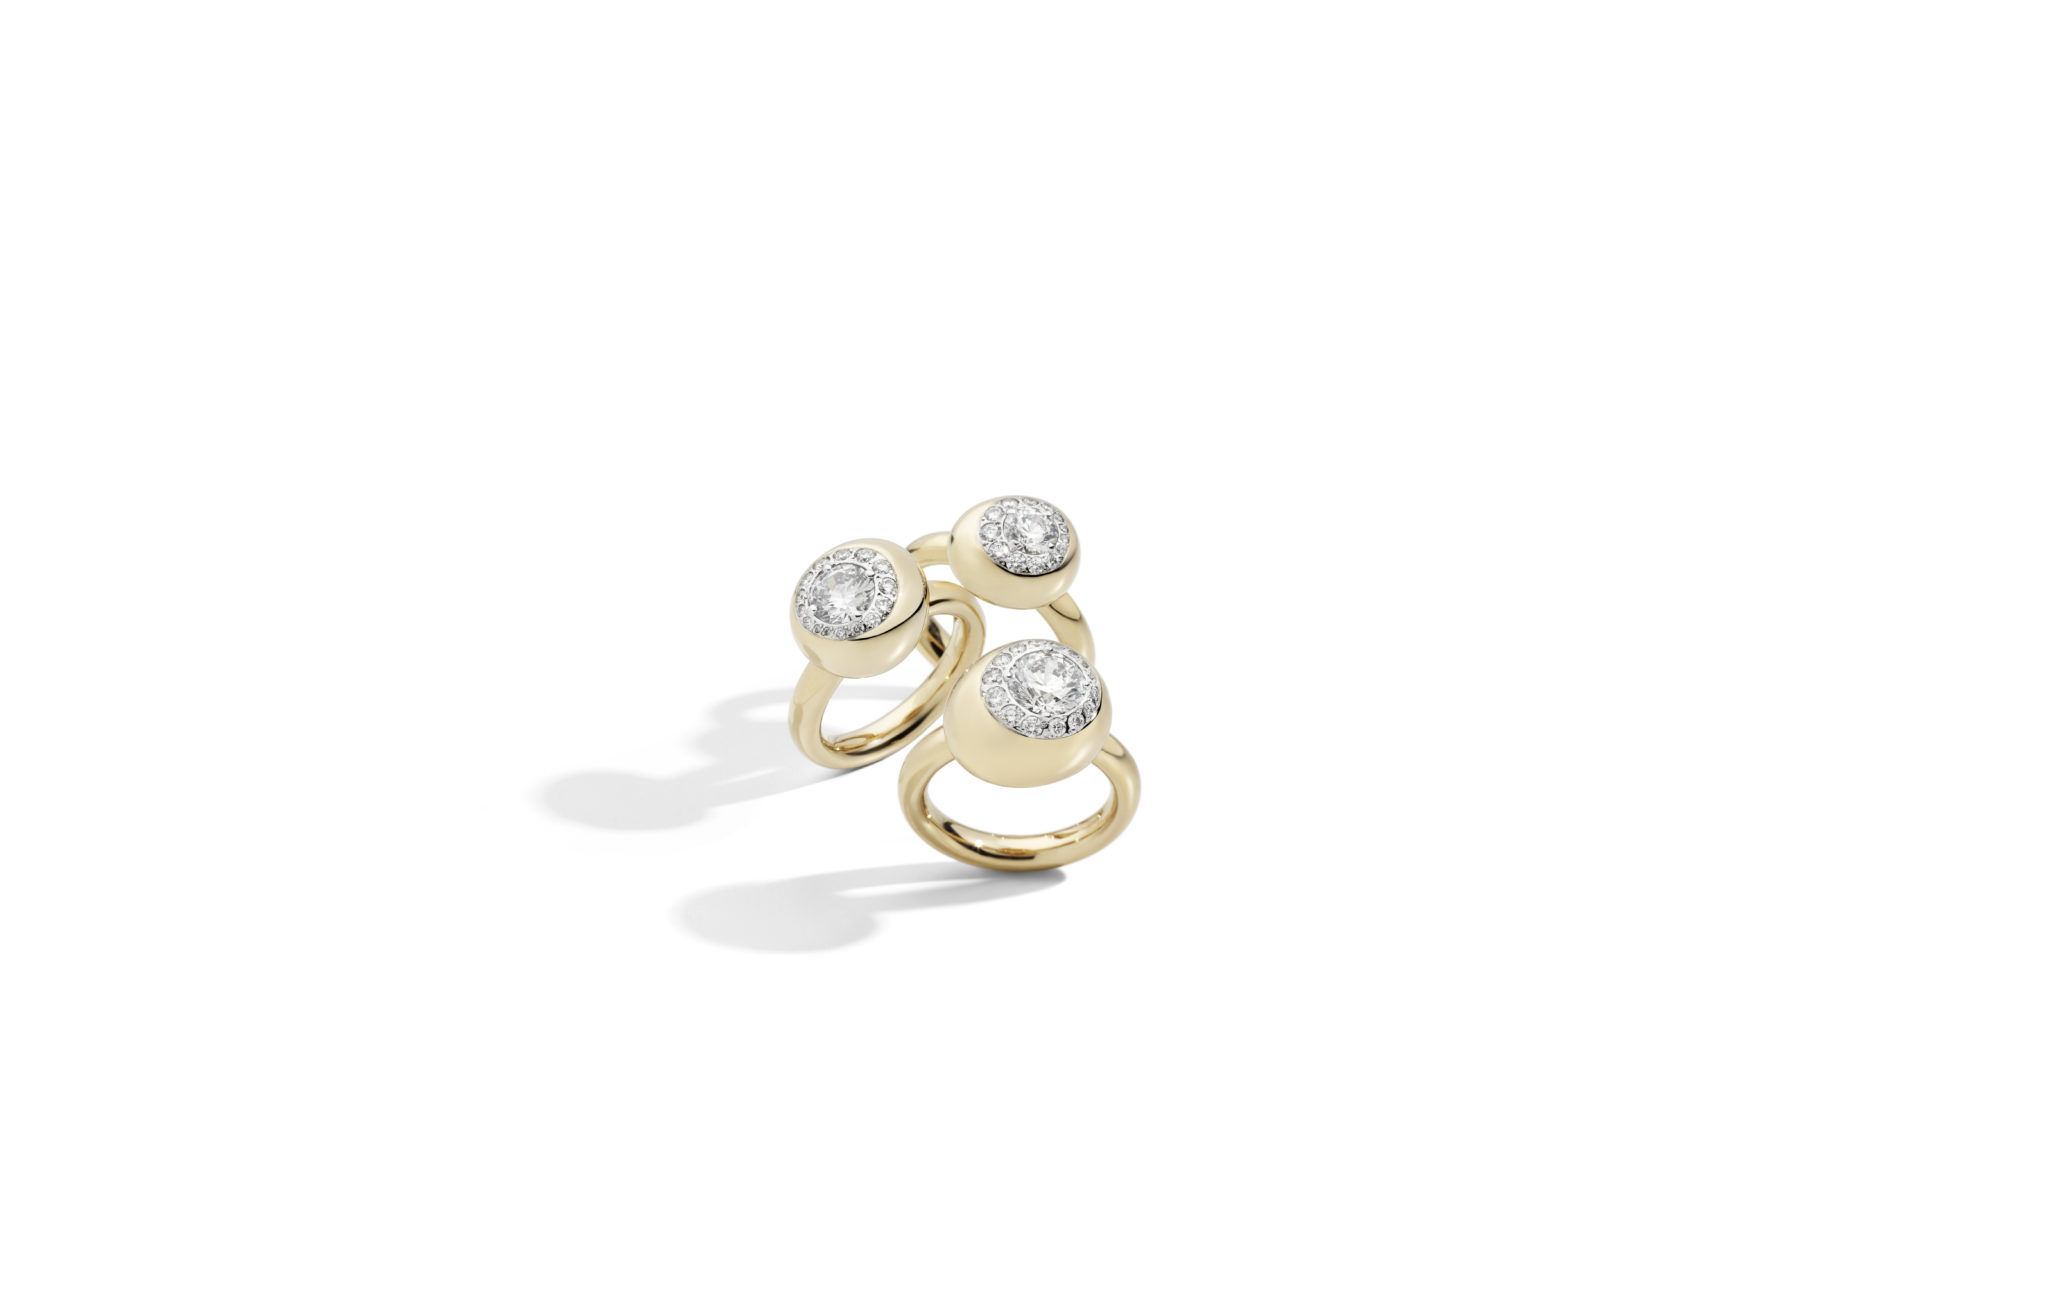 Nuvola rings rose gold and diamonds by Pomellato - Groupage